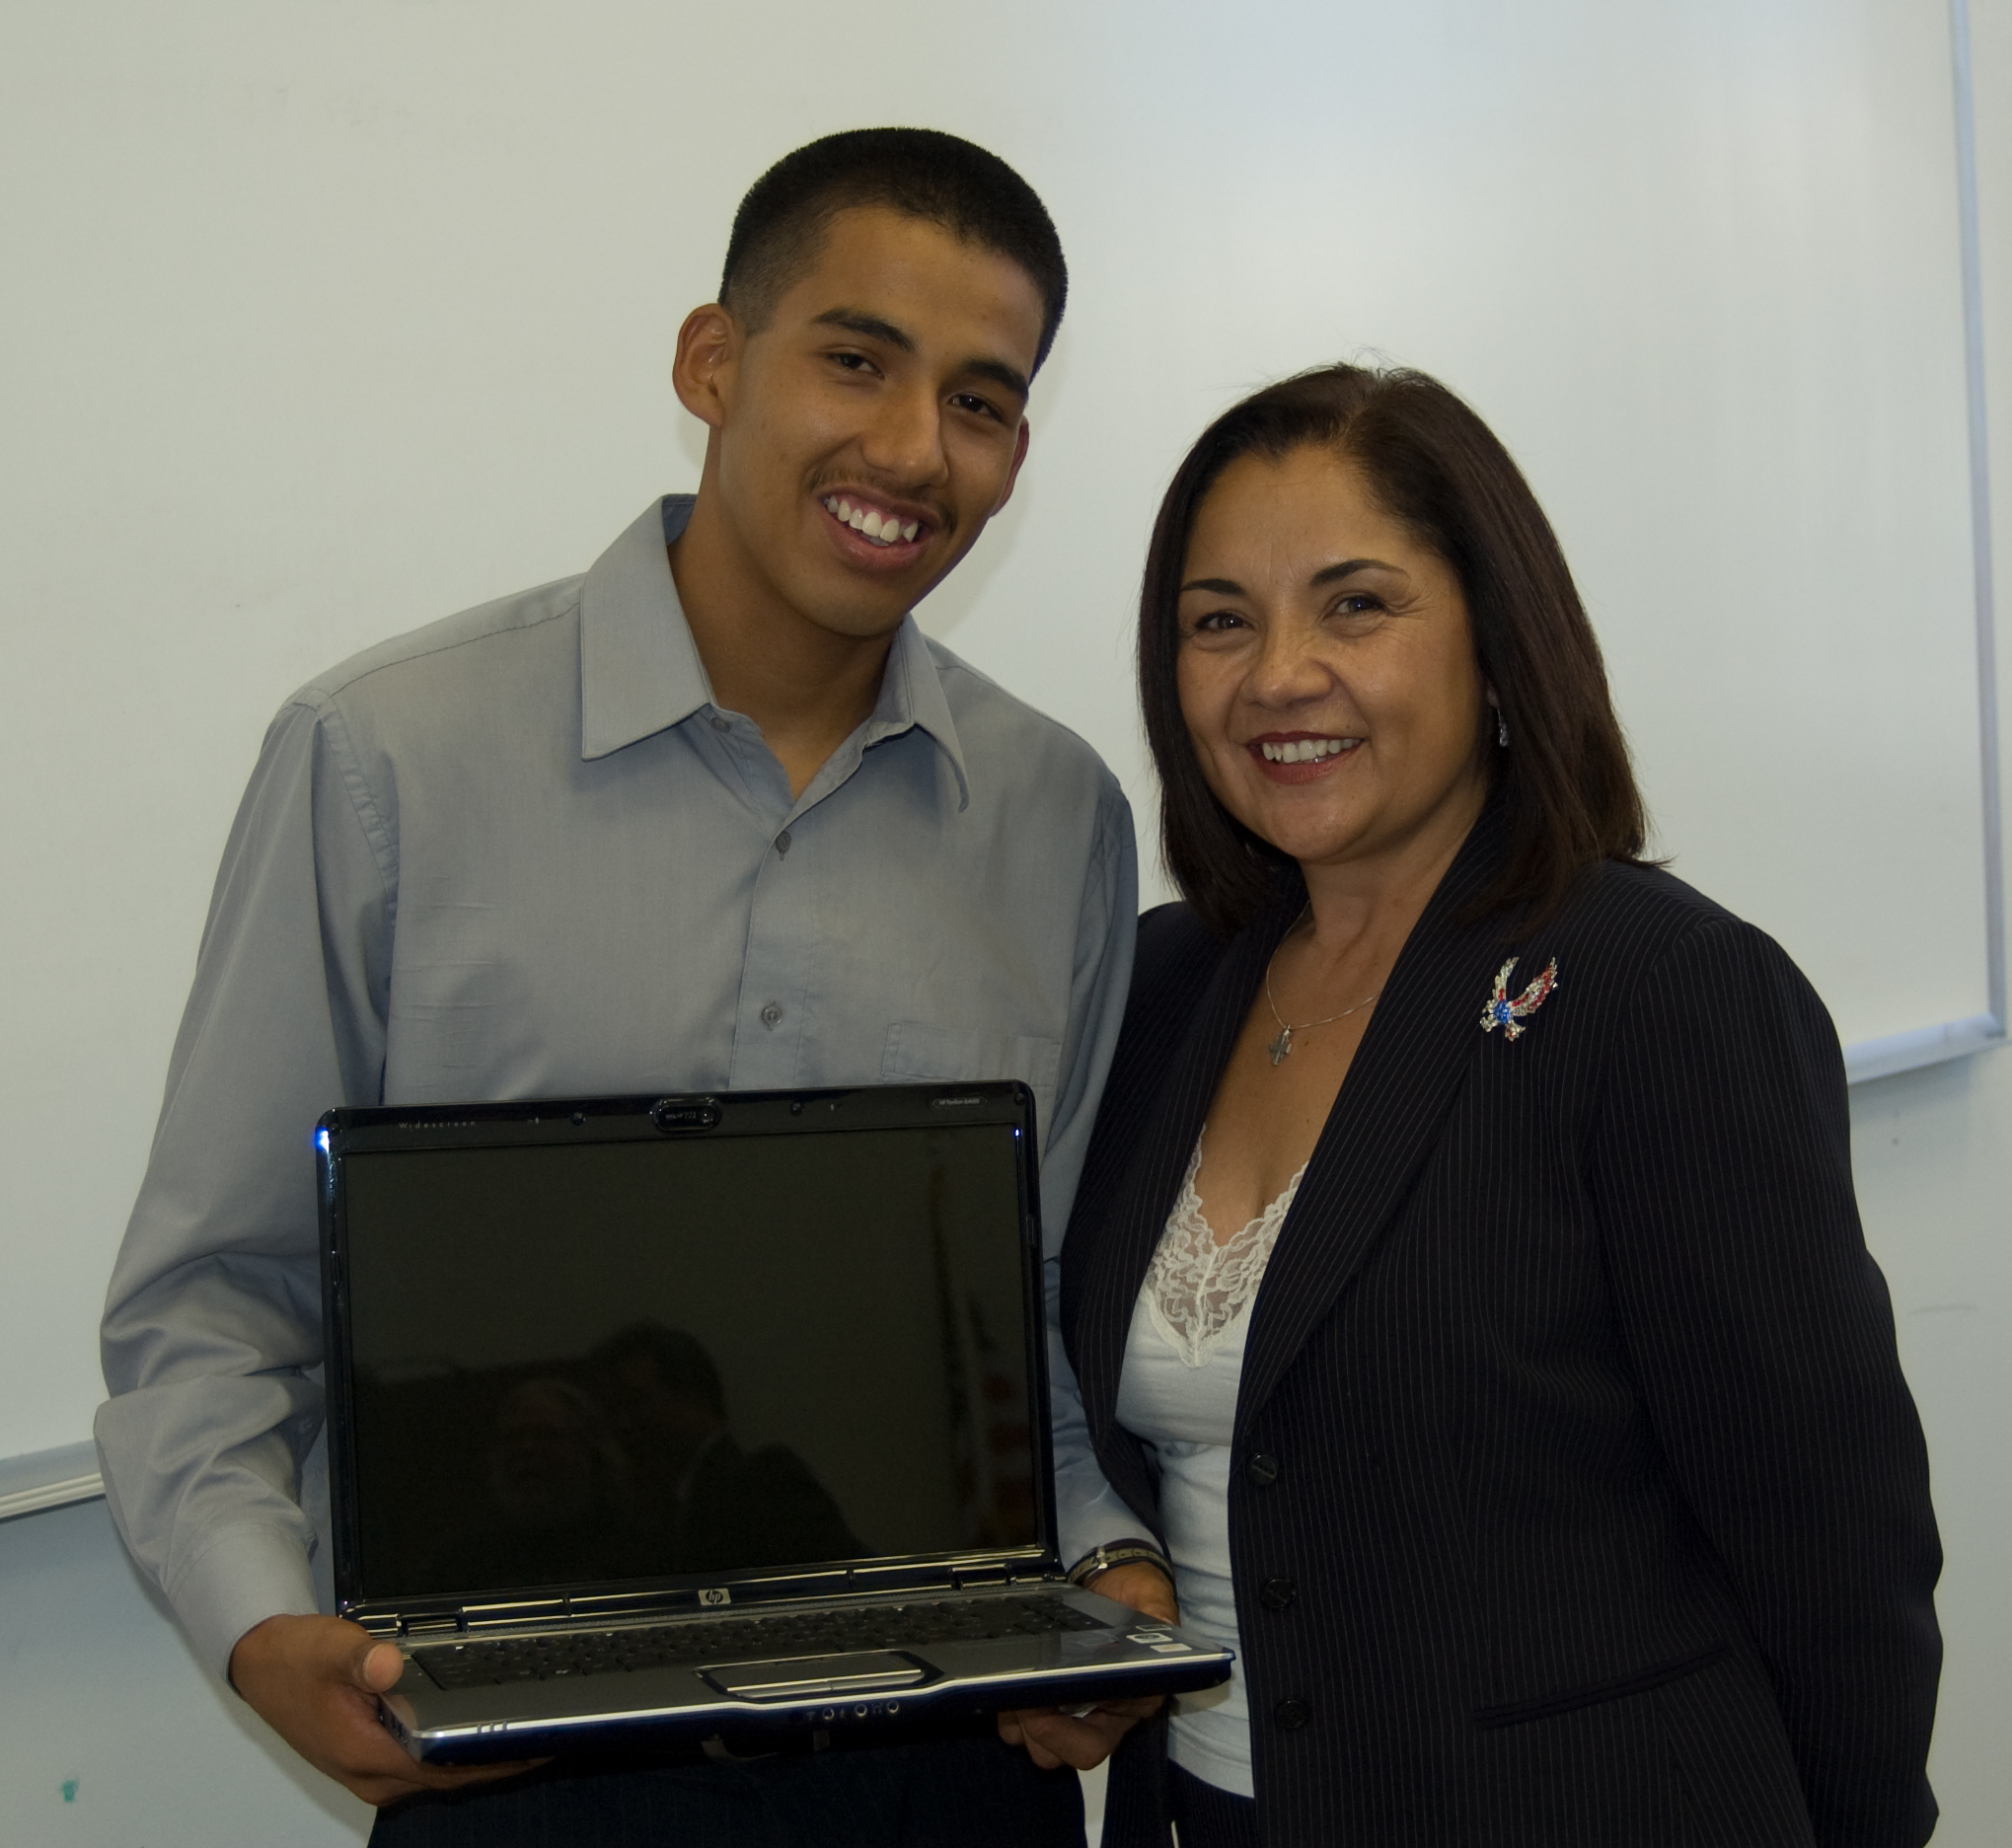 Esteban received his new computer that helped him get a 3.0 GPA his first year at UC San Diego.